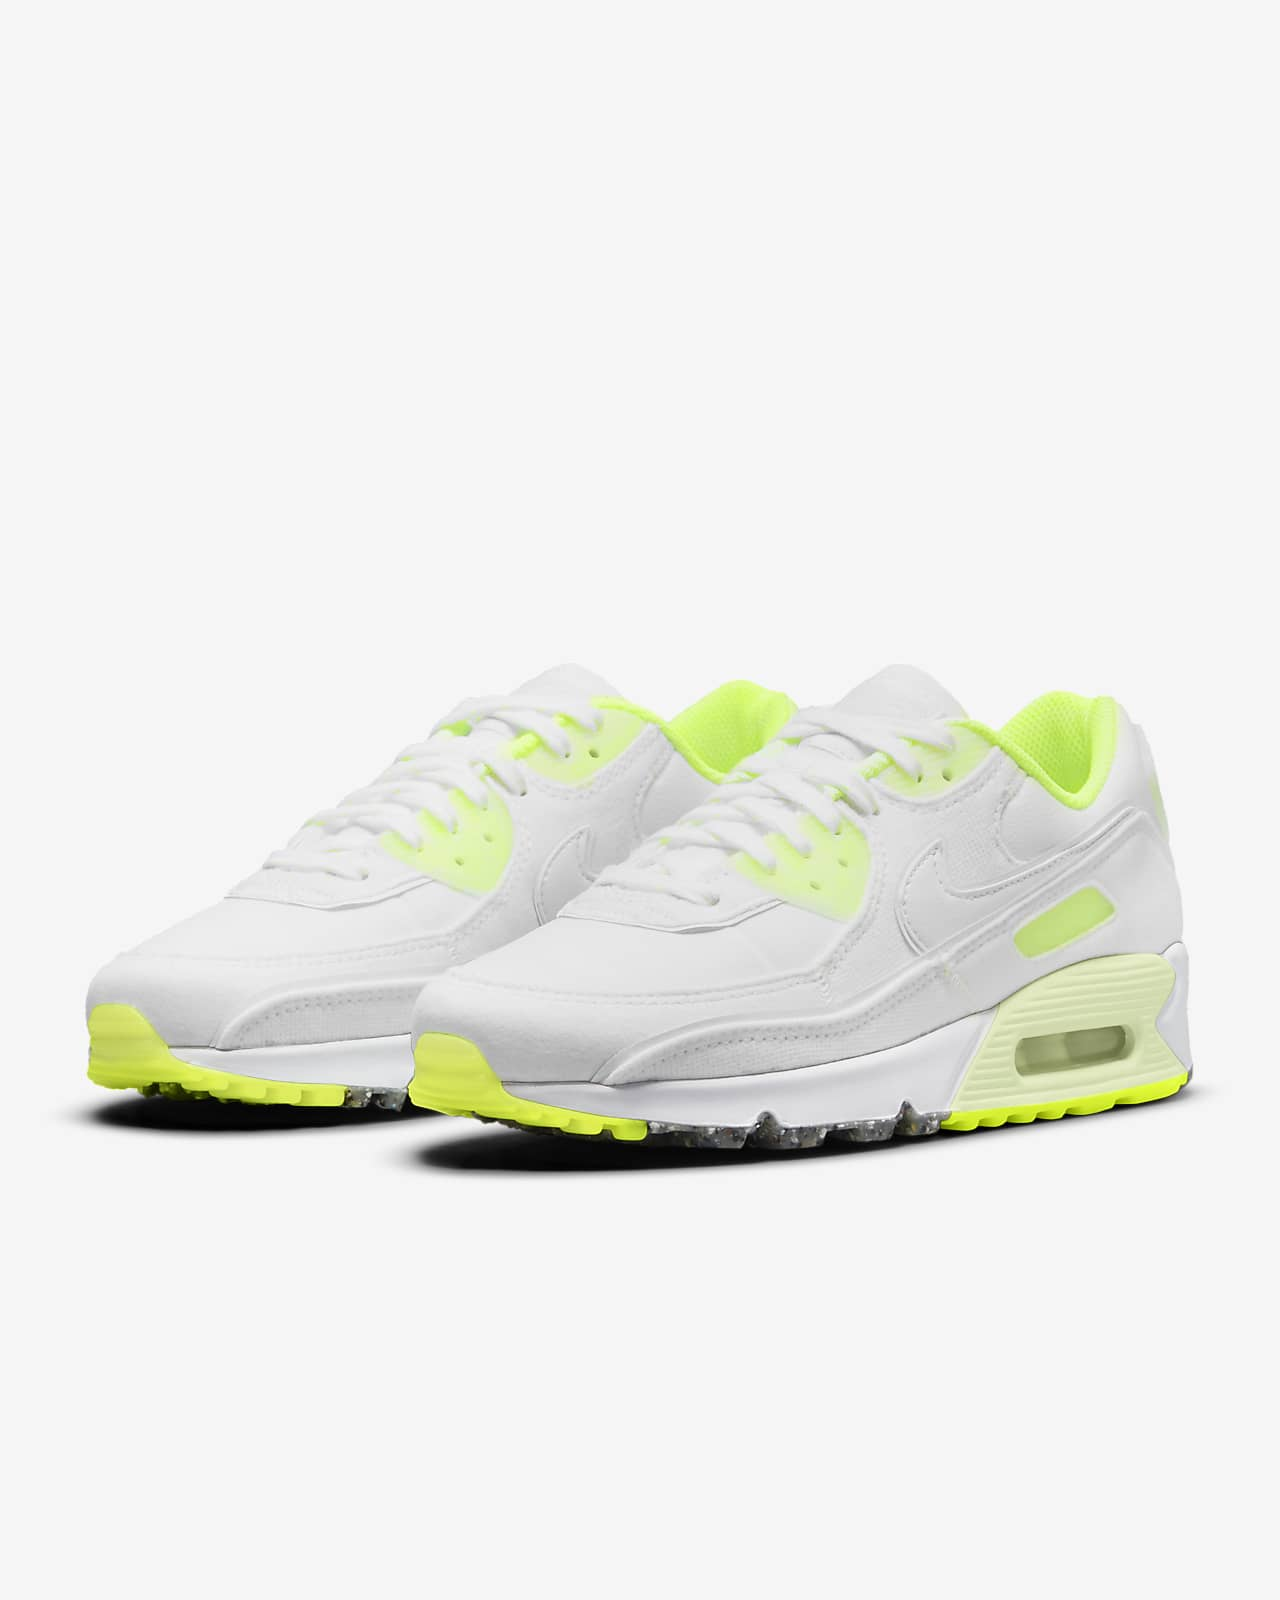 Nike Air Max 90 Exeter Edition Women's Shoe